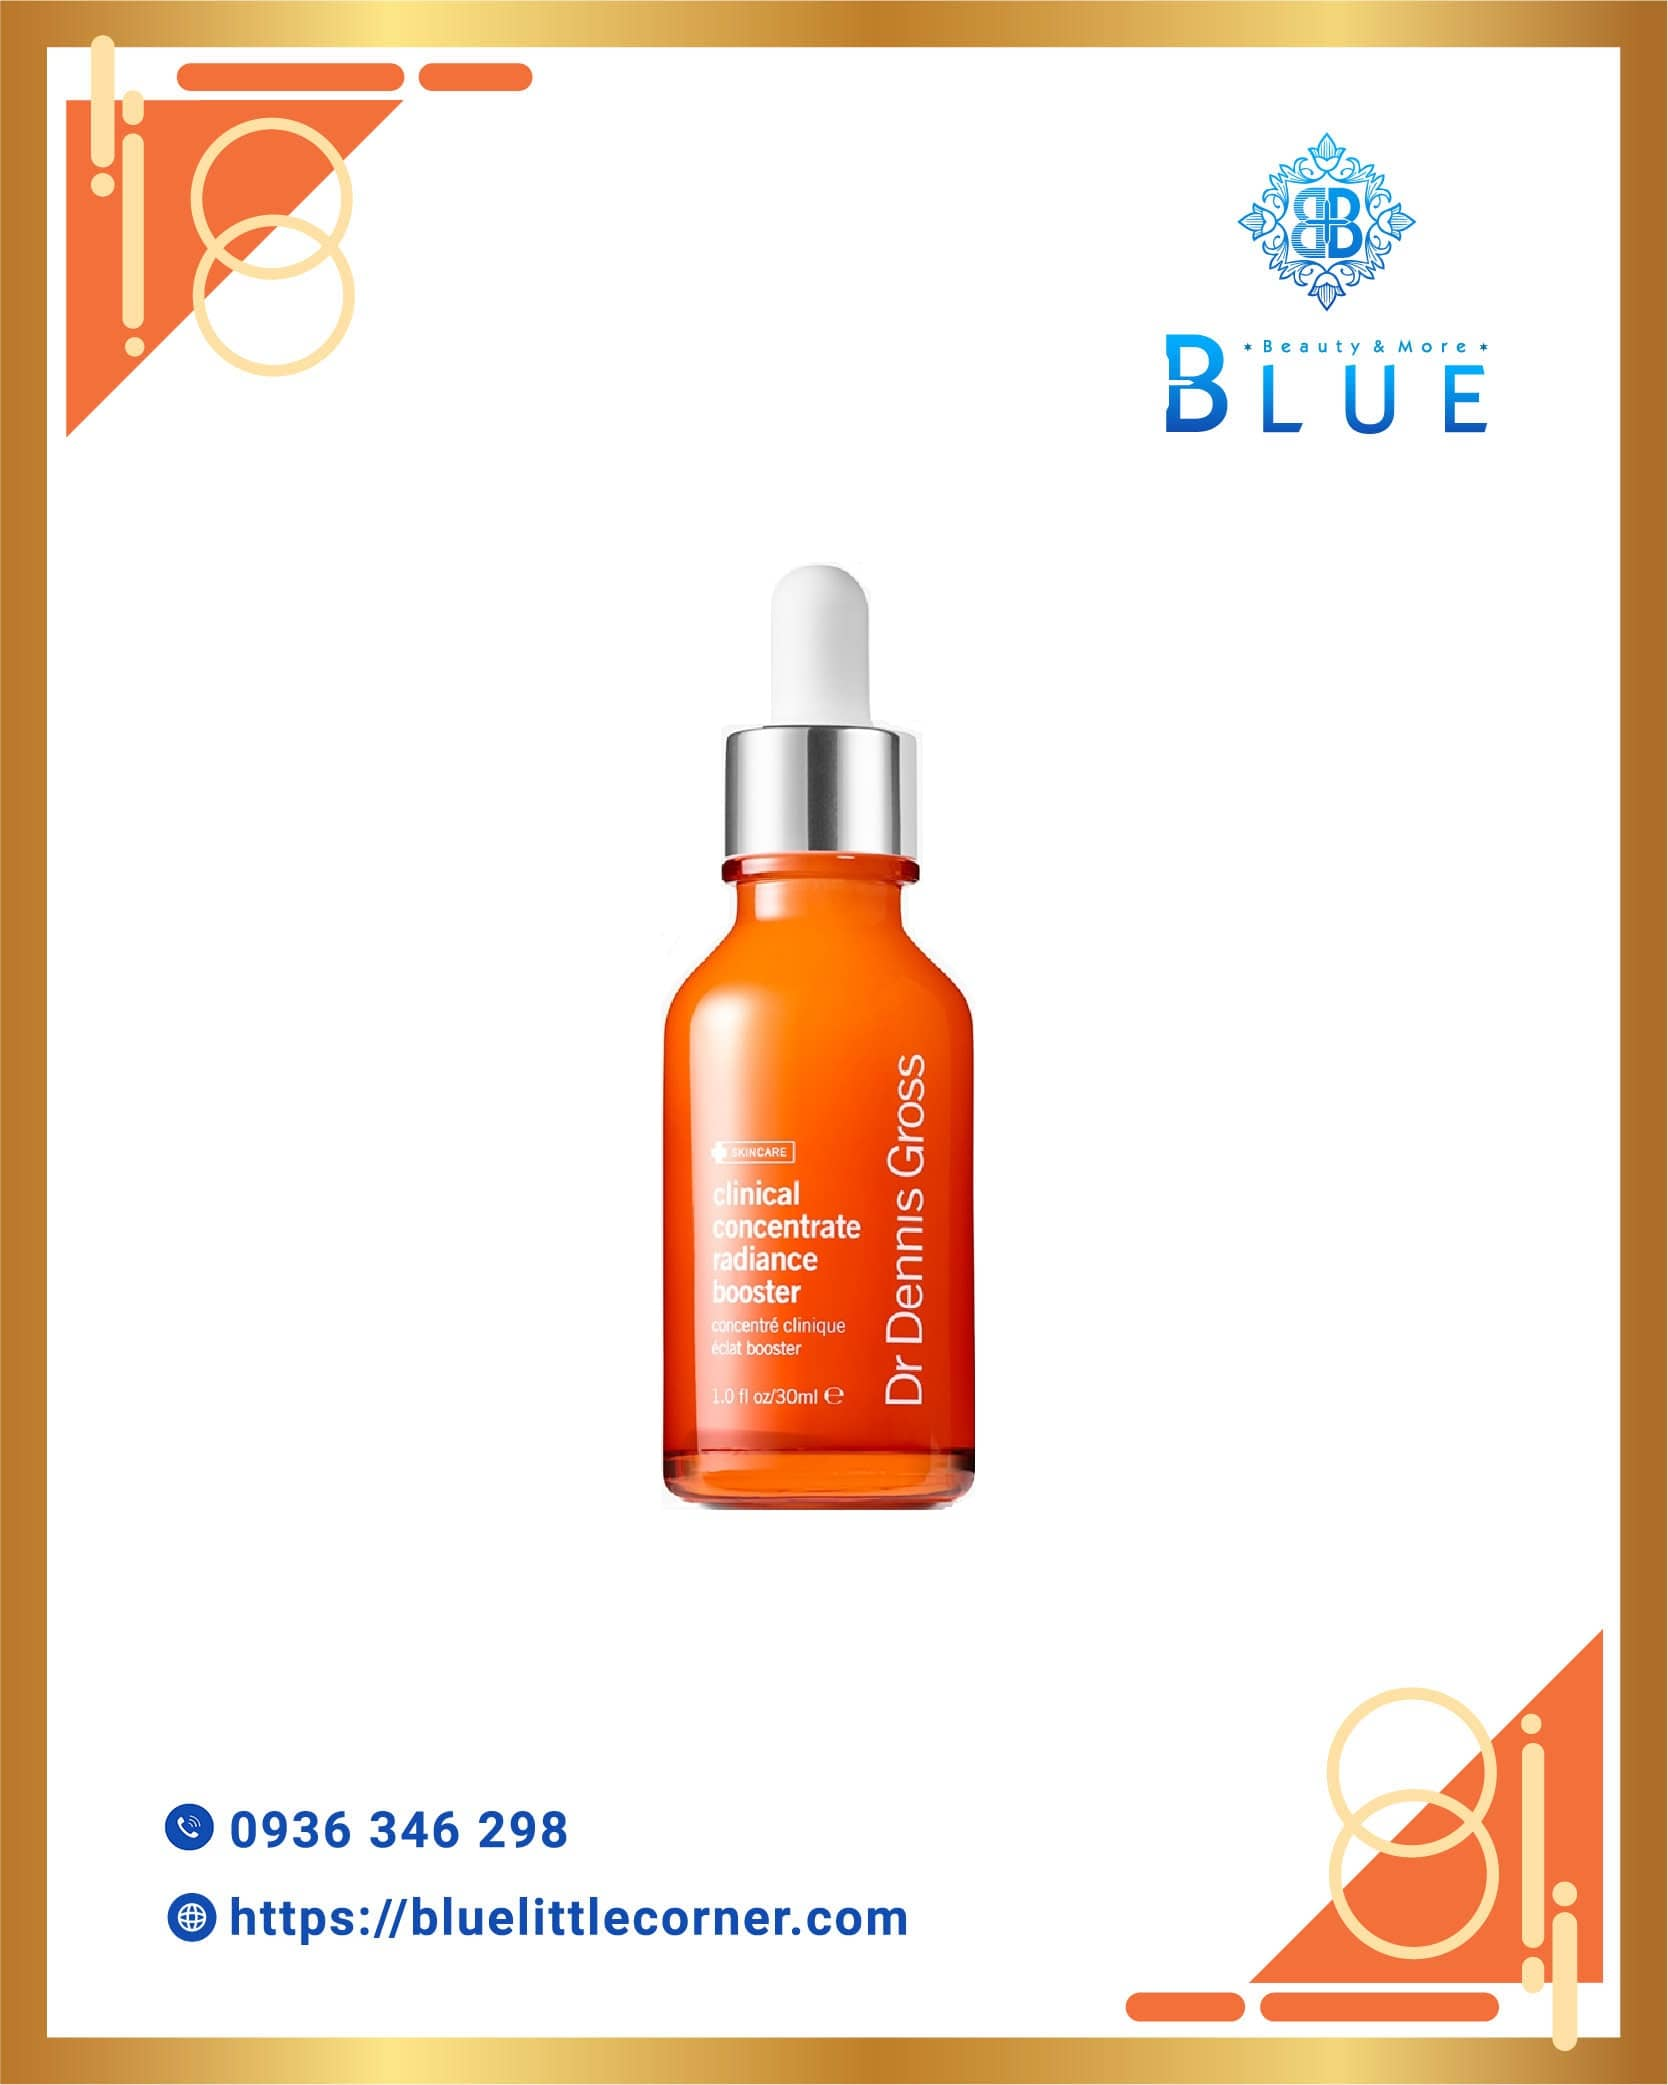 Serum CLINICAL CONCENTRATE RADIANCE BOOSTER